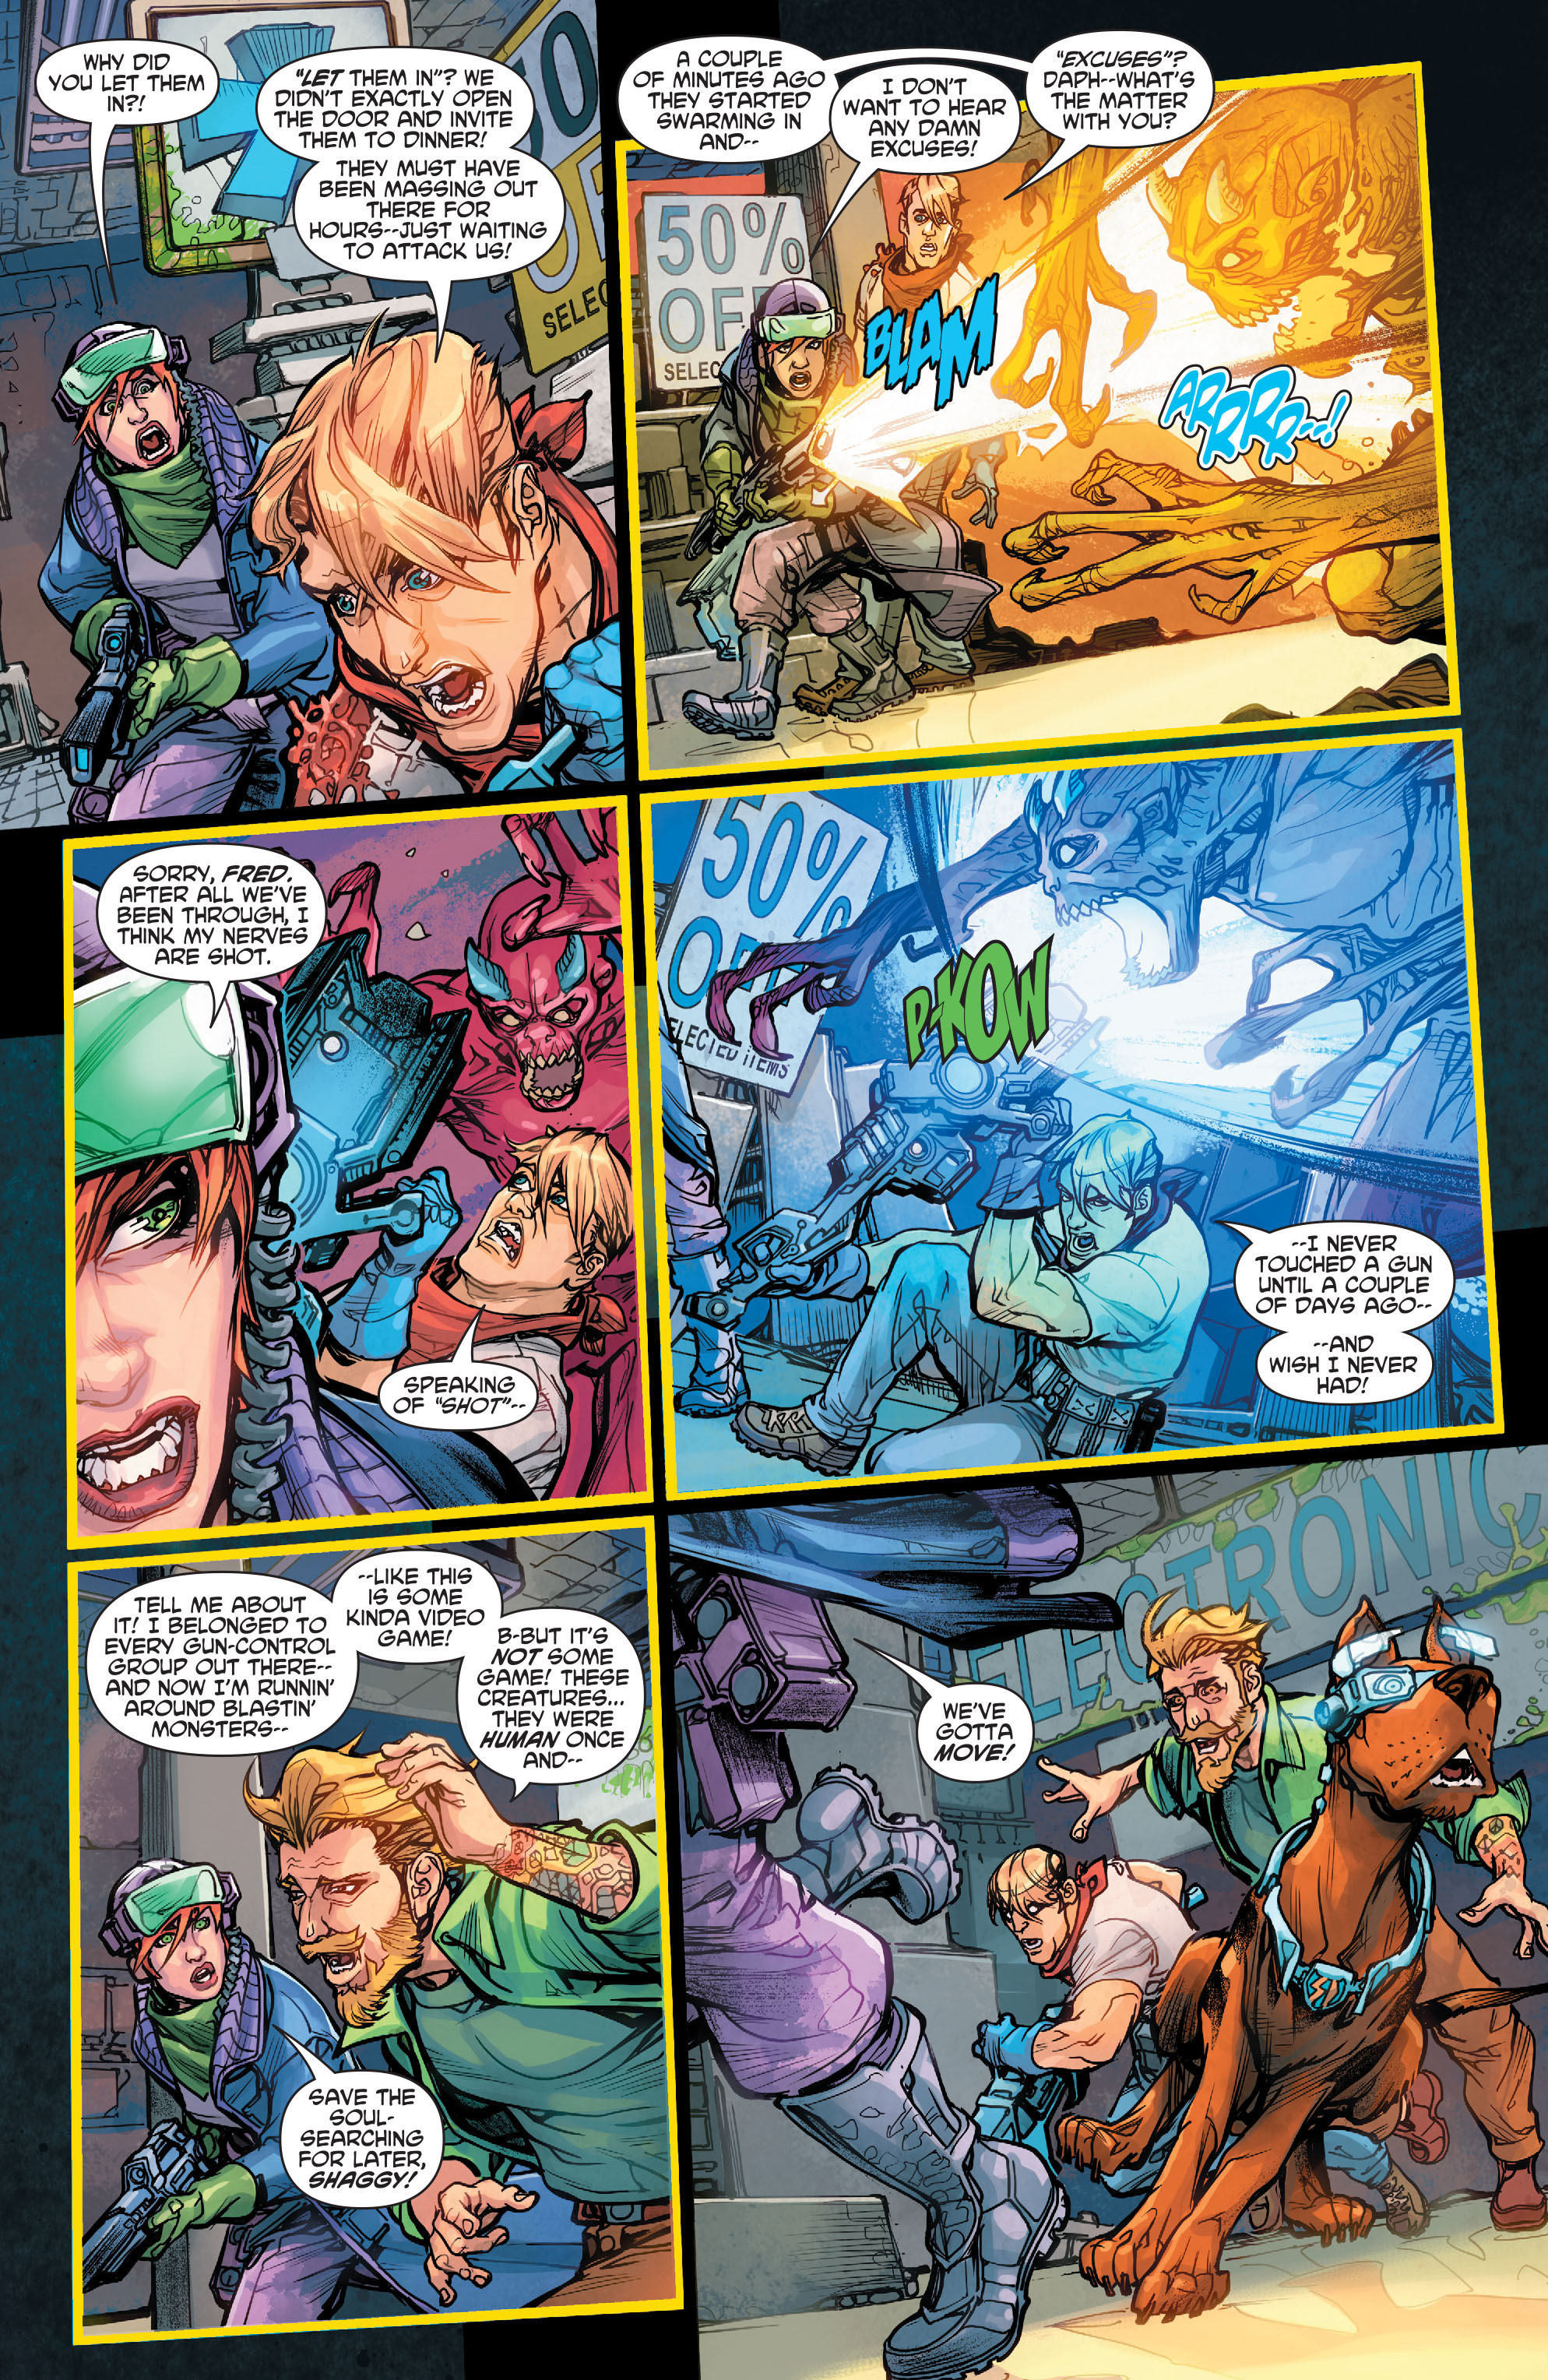 Read online Scooby Apocalypse comic -  Issue #5 - 7